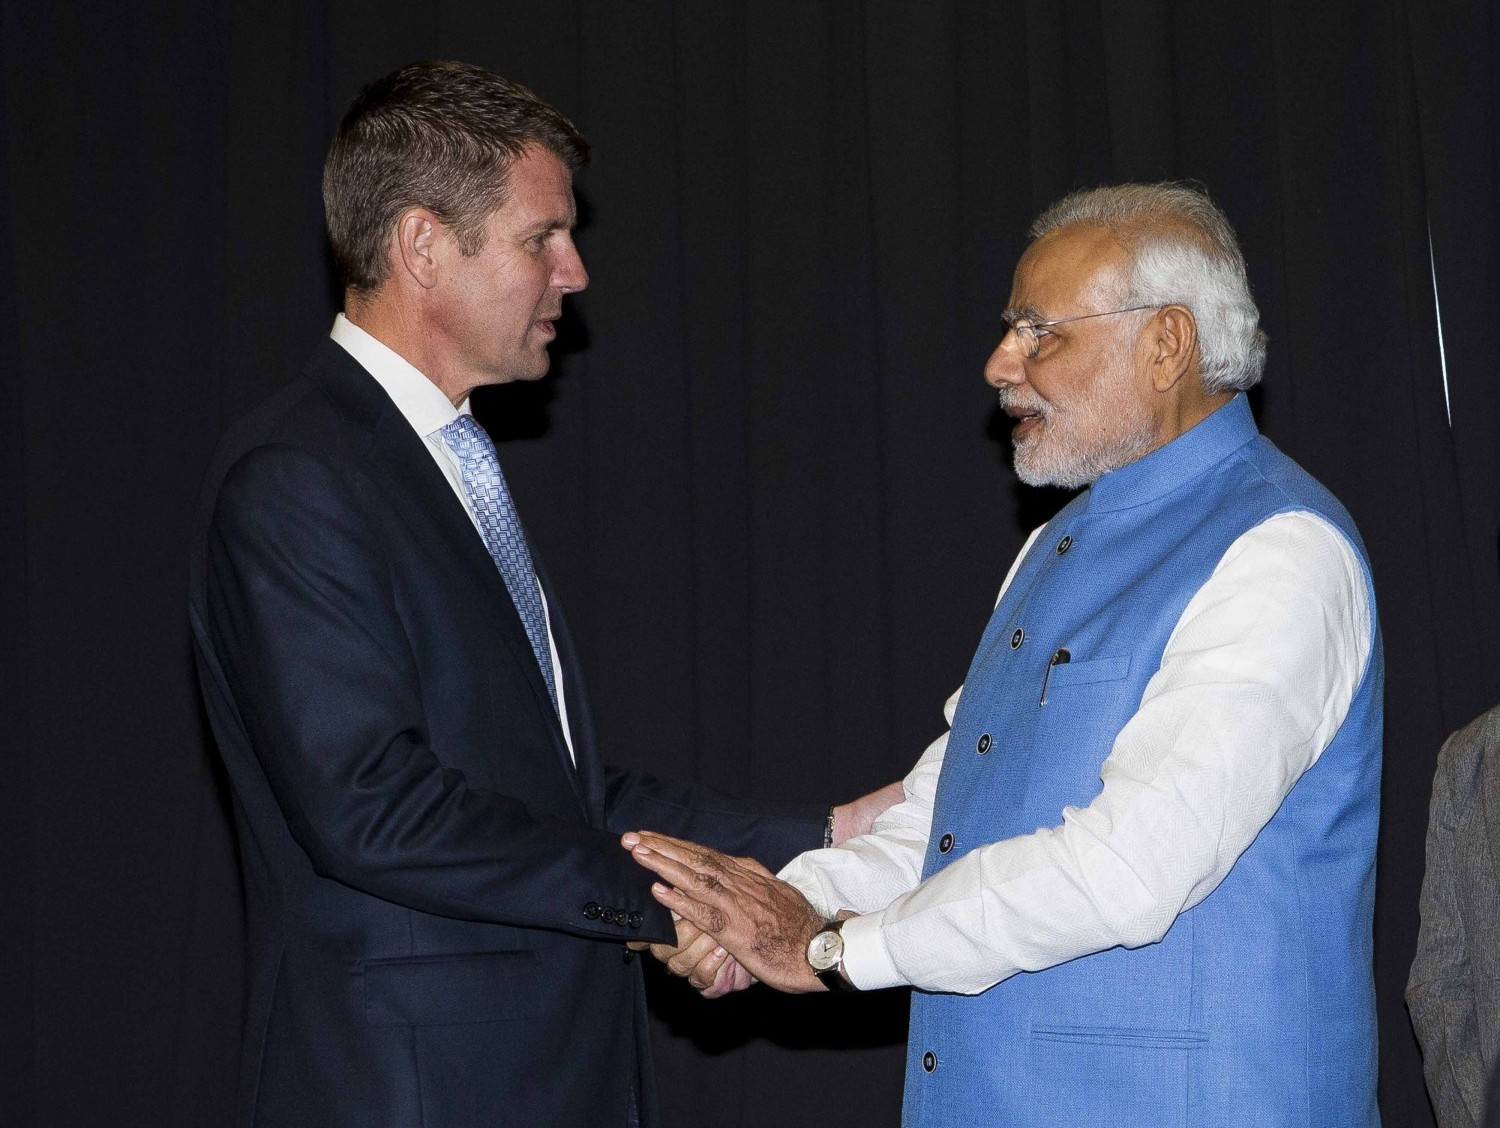 Mr Narendra Modi – Prime Minister of India meeting with The Hon Mike Baird, NSW 2014